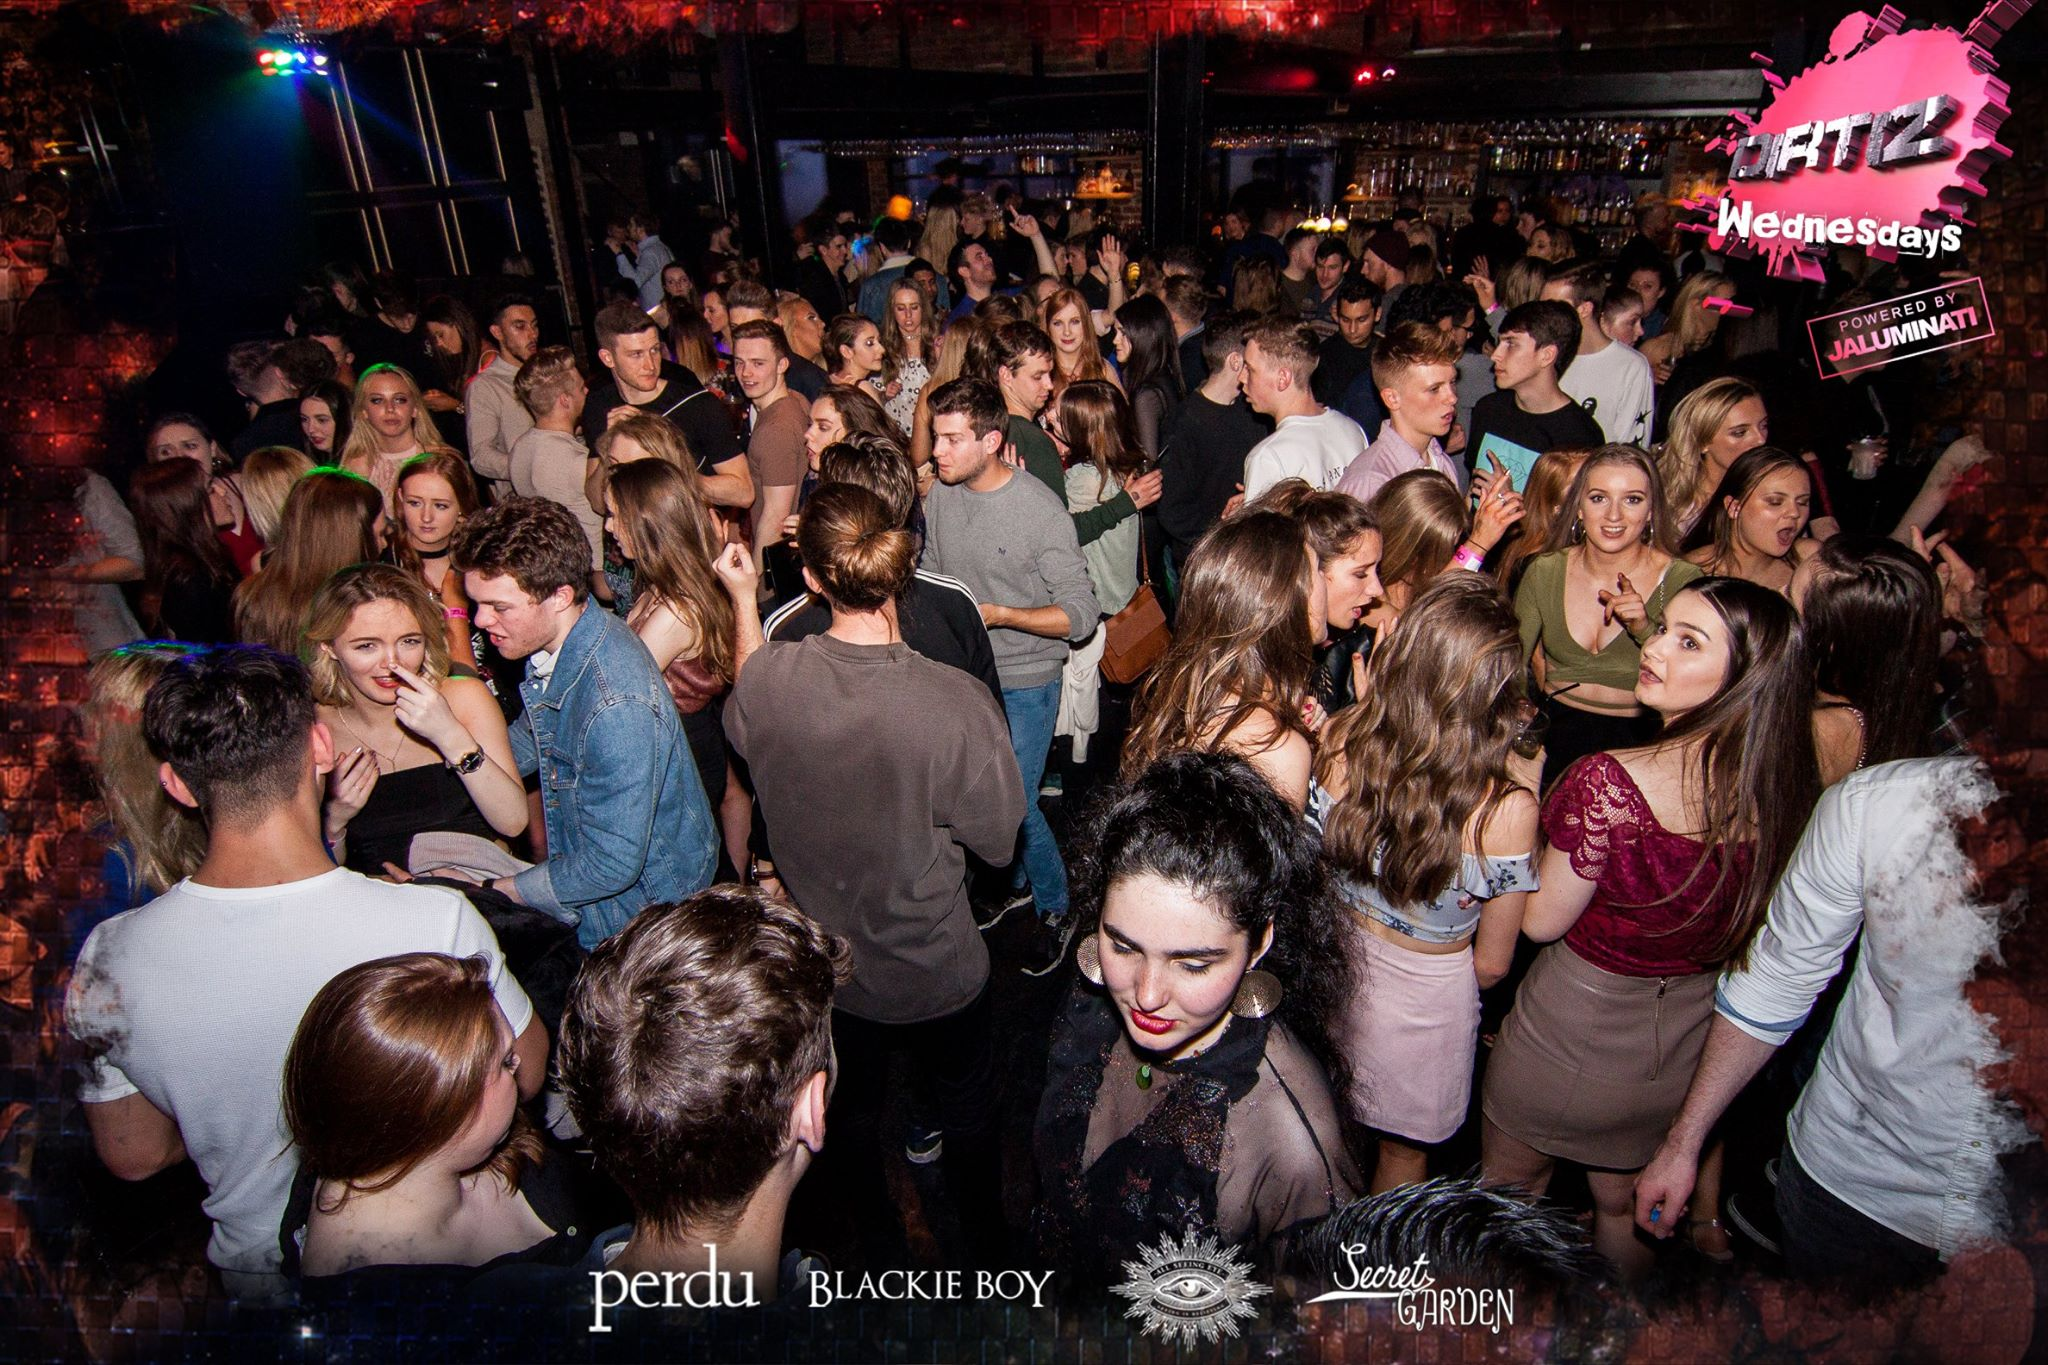 Club Night Guide to Newcastle Nightclubs, with an image of people on the dance floor at Perdu